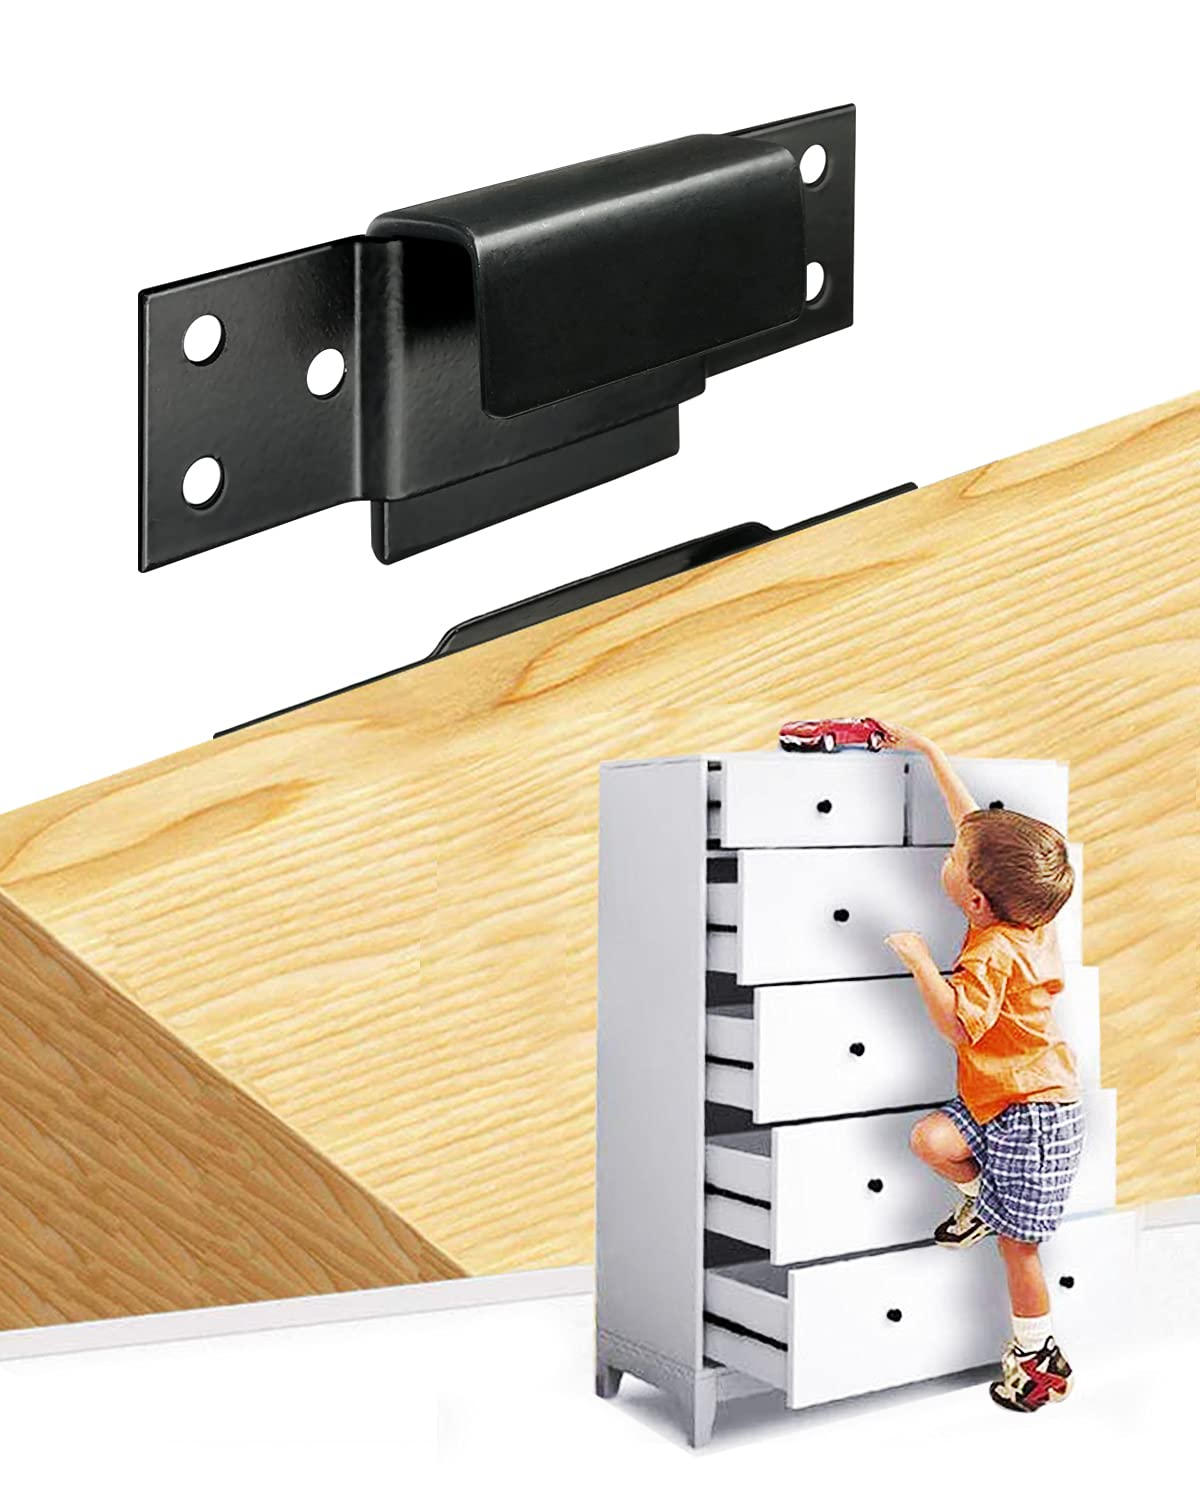 Furniture Anchor Furniture Wall Anchors for Baby Proofing MONDOME Removable Baby Proofing Furniture Anchors 4PCS 500 Pound Heavy Duty Metal Secure Baby Pet Safety (Black)